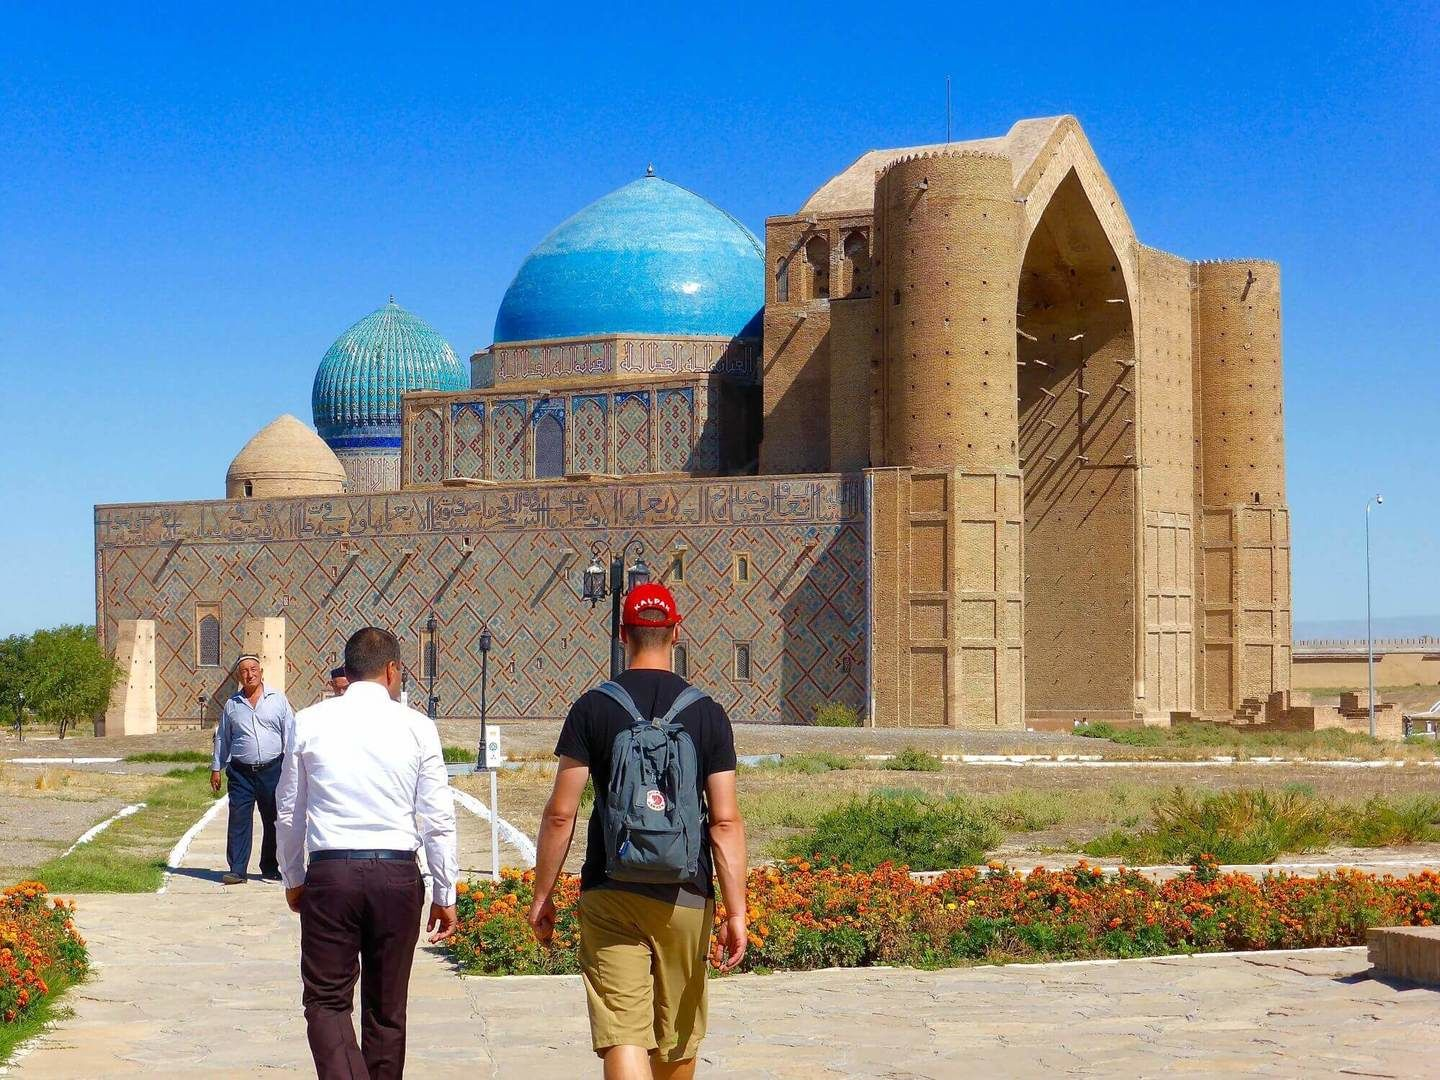 5-Turkistan-Historical-Center-Southern-Kazakhstan.jpg